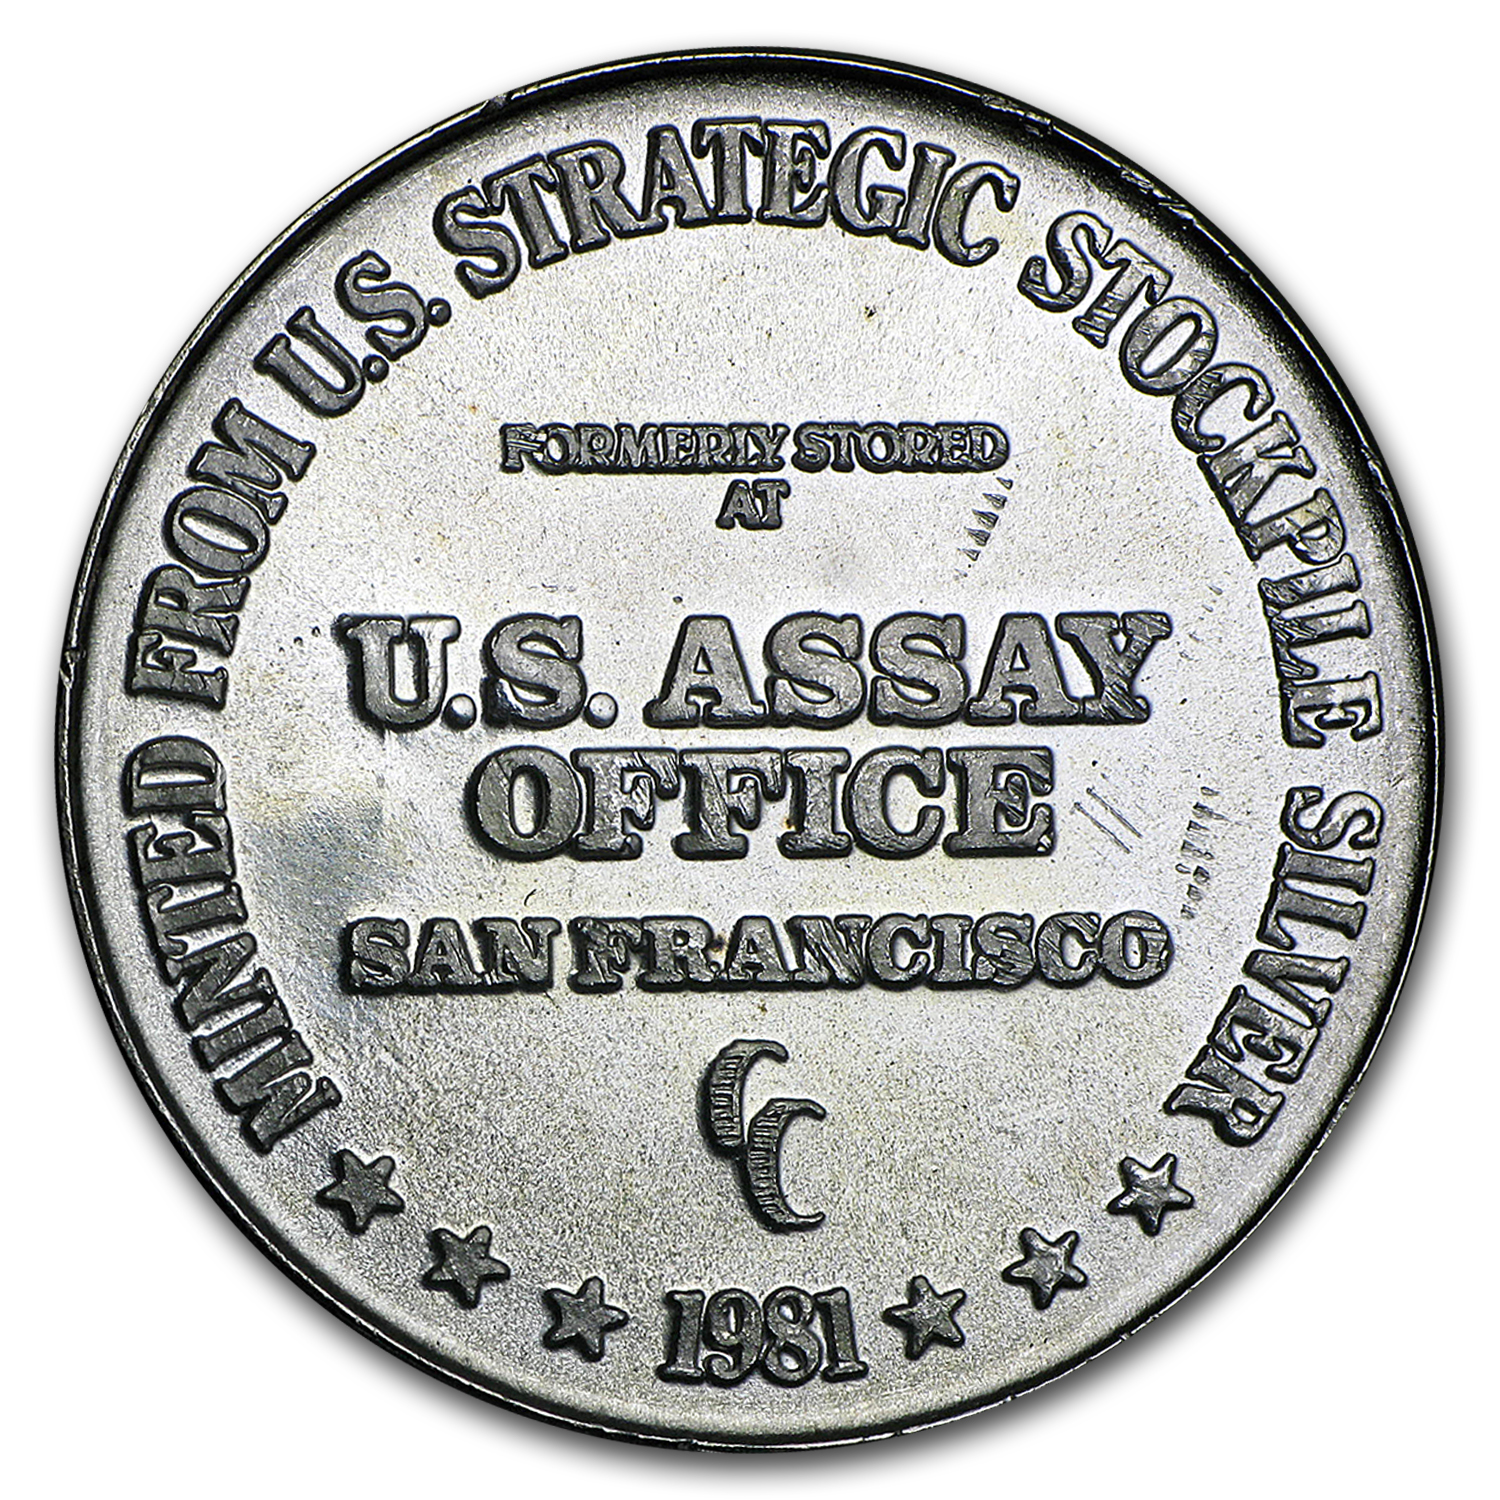 1 oz Silver Round - U.S. Assay Office